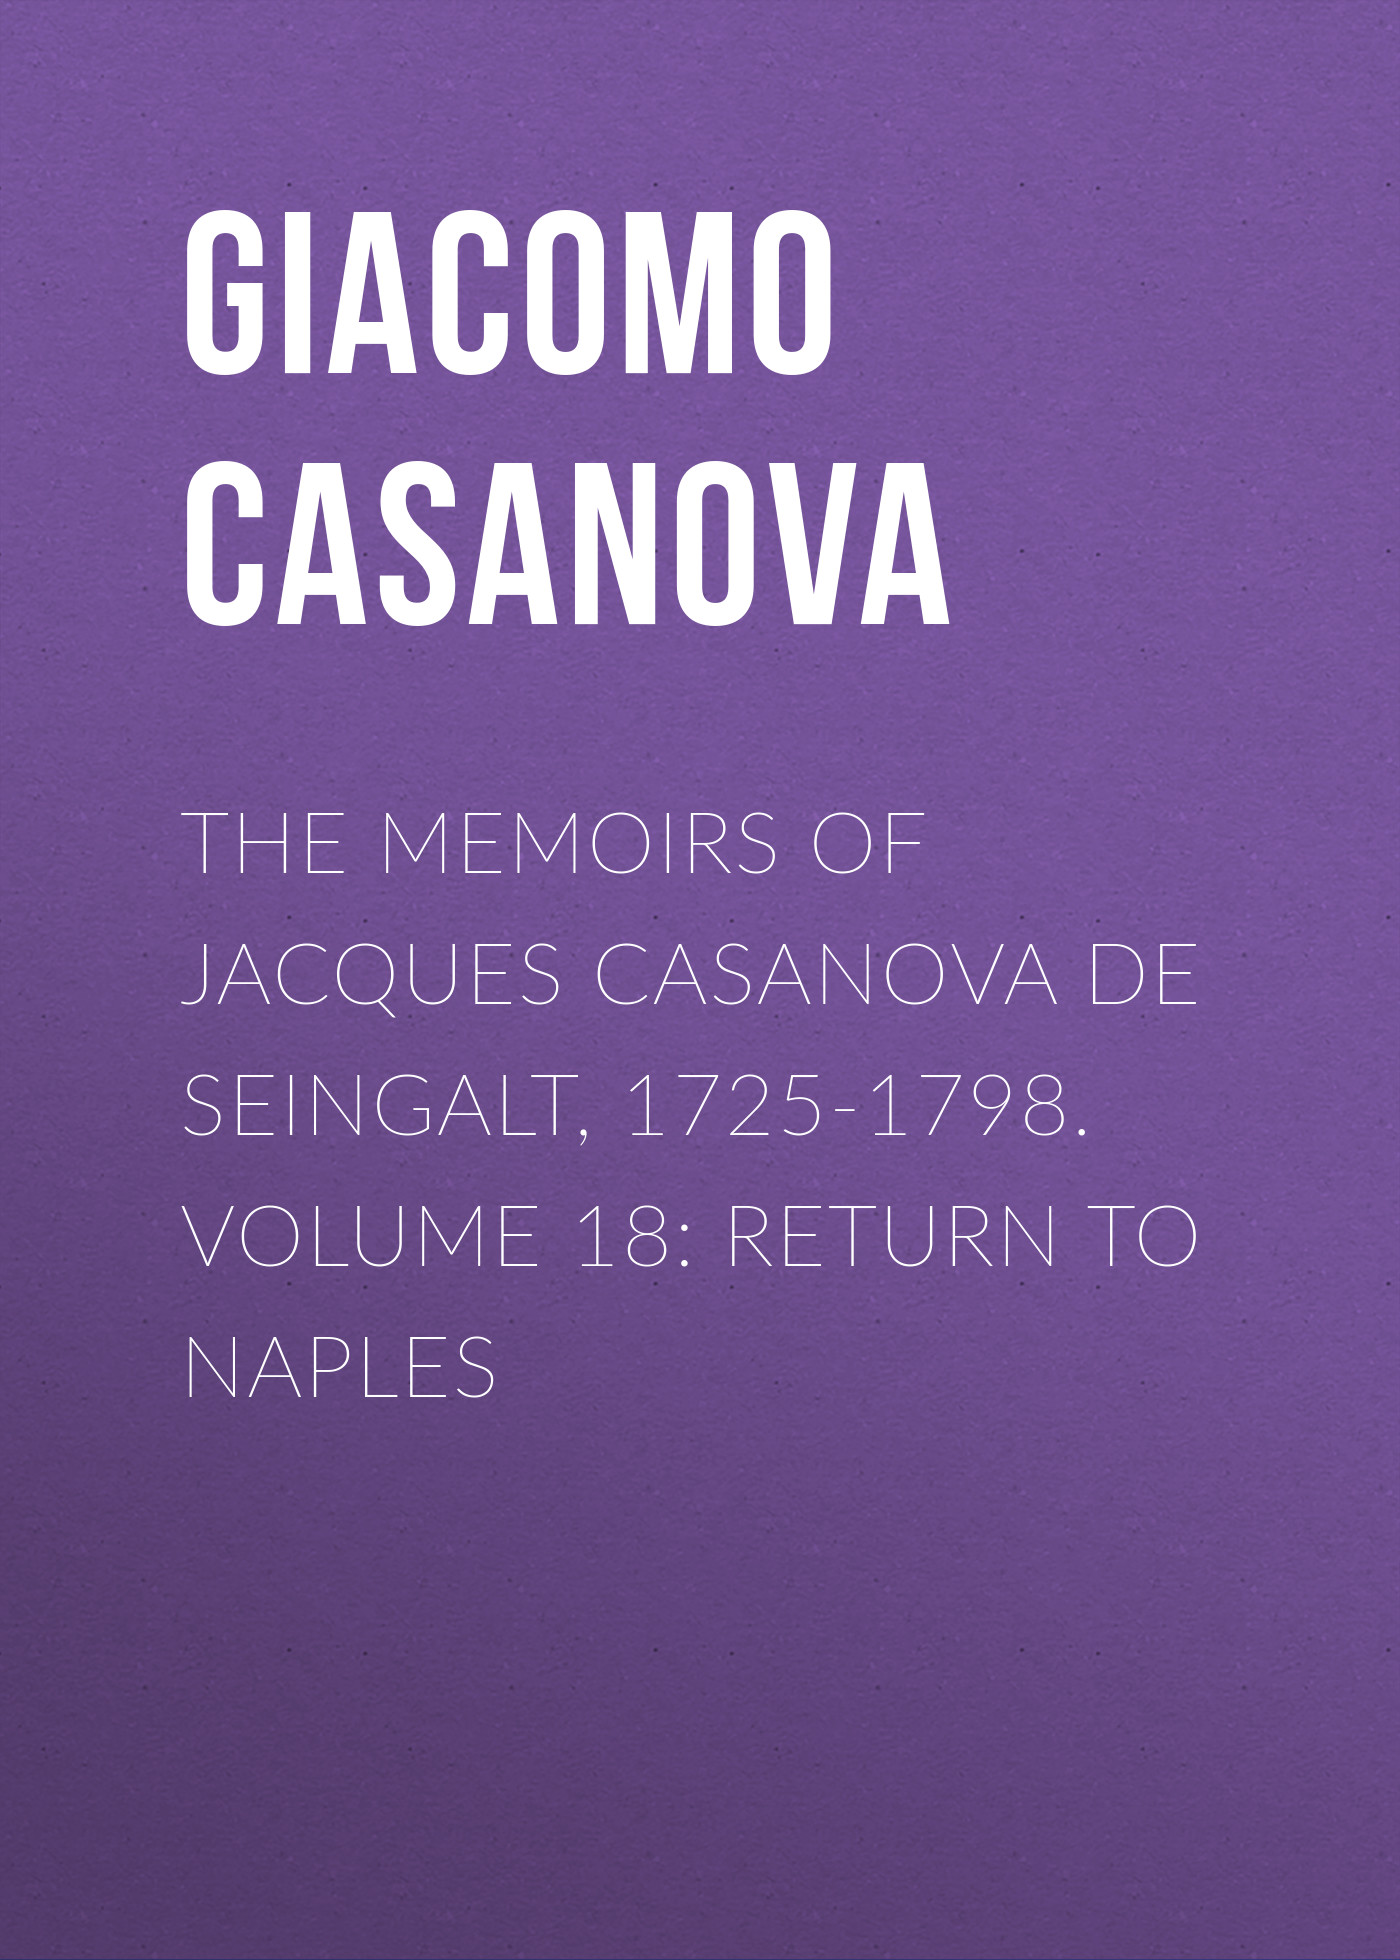 Giacomo Casanova The Memoirs of Jacques Casanova de Seingalt, 1725-1798. Volume 18: Return to Naples caparezza naples